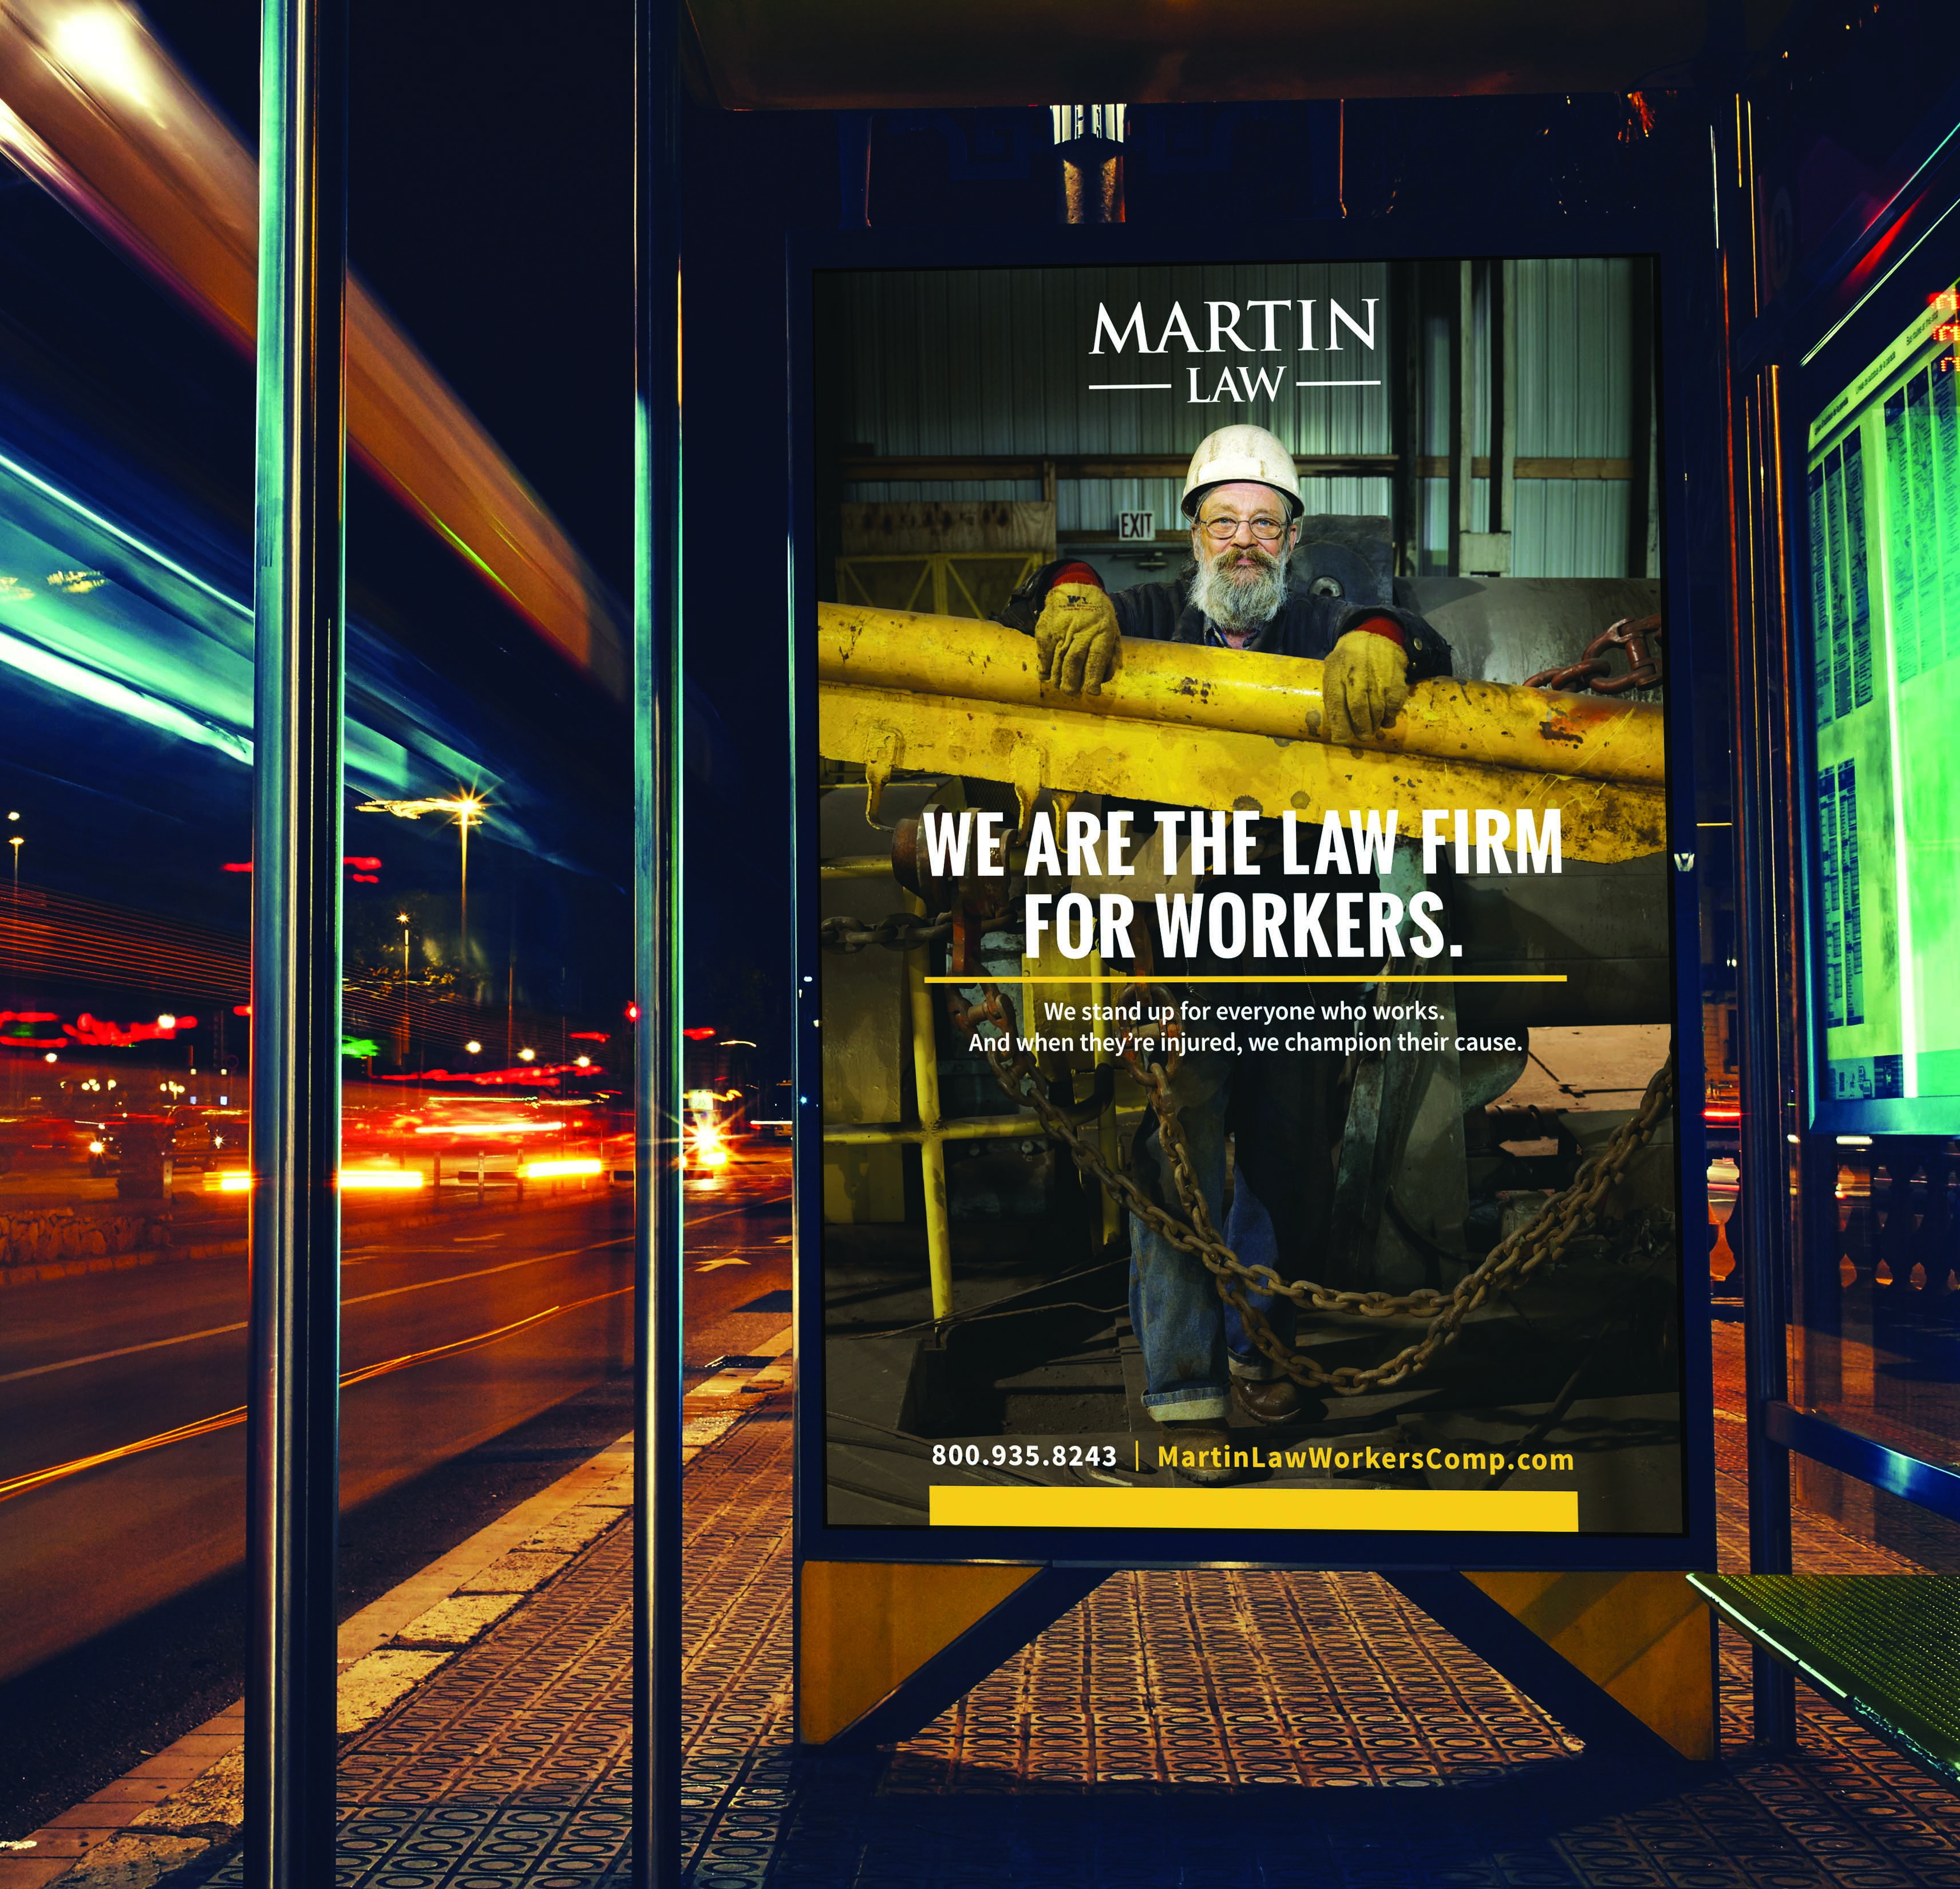 Need To Know Branding Reidel Law Firm: D4 Creative Launches An Emotive Campaign For Martin Law